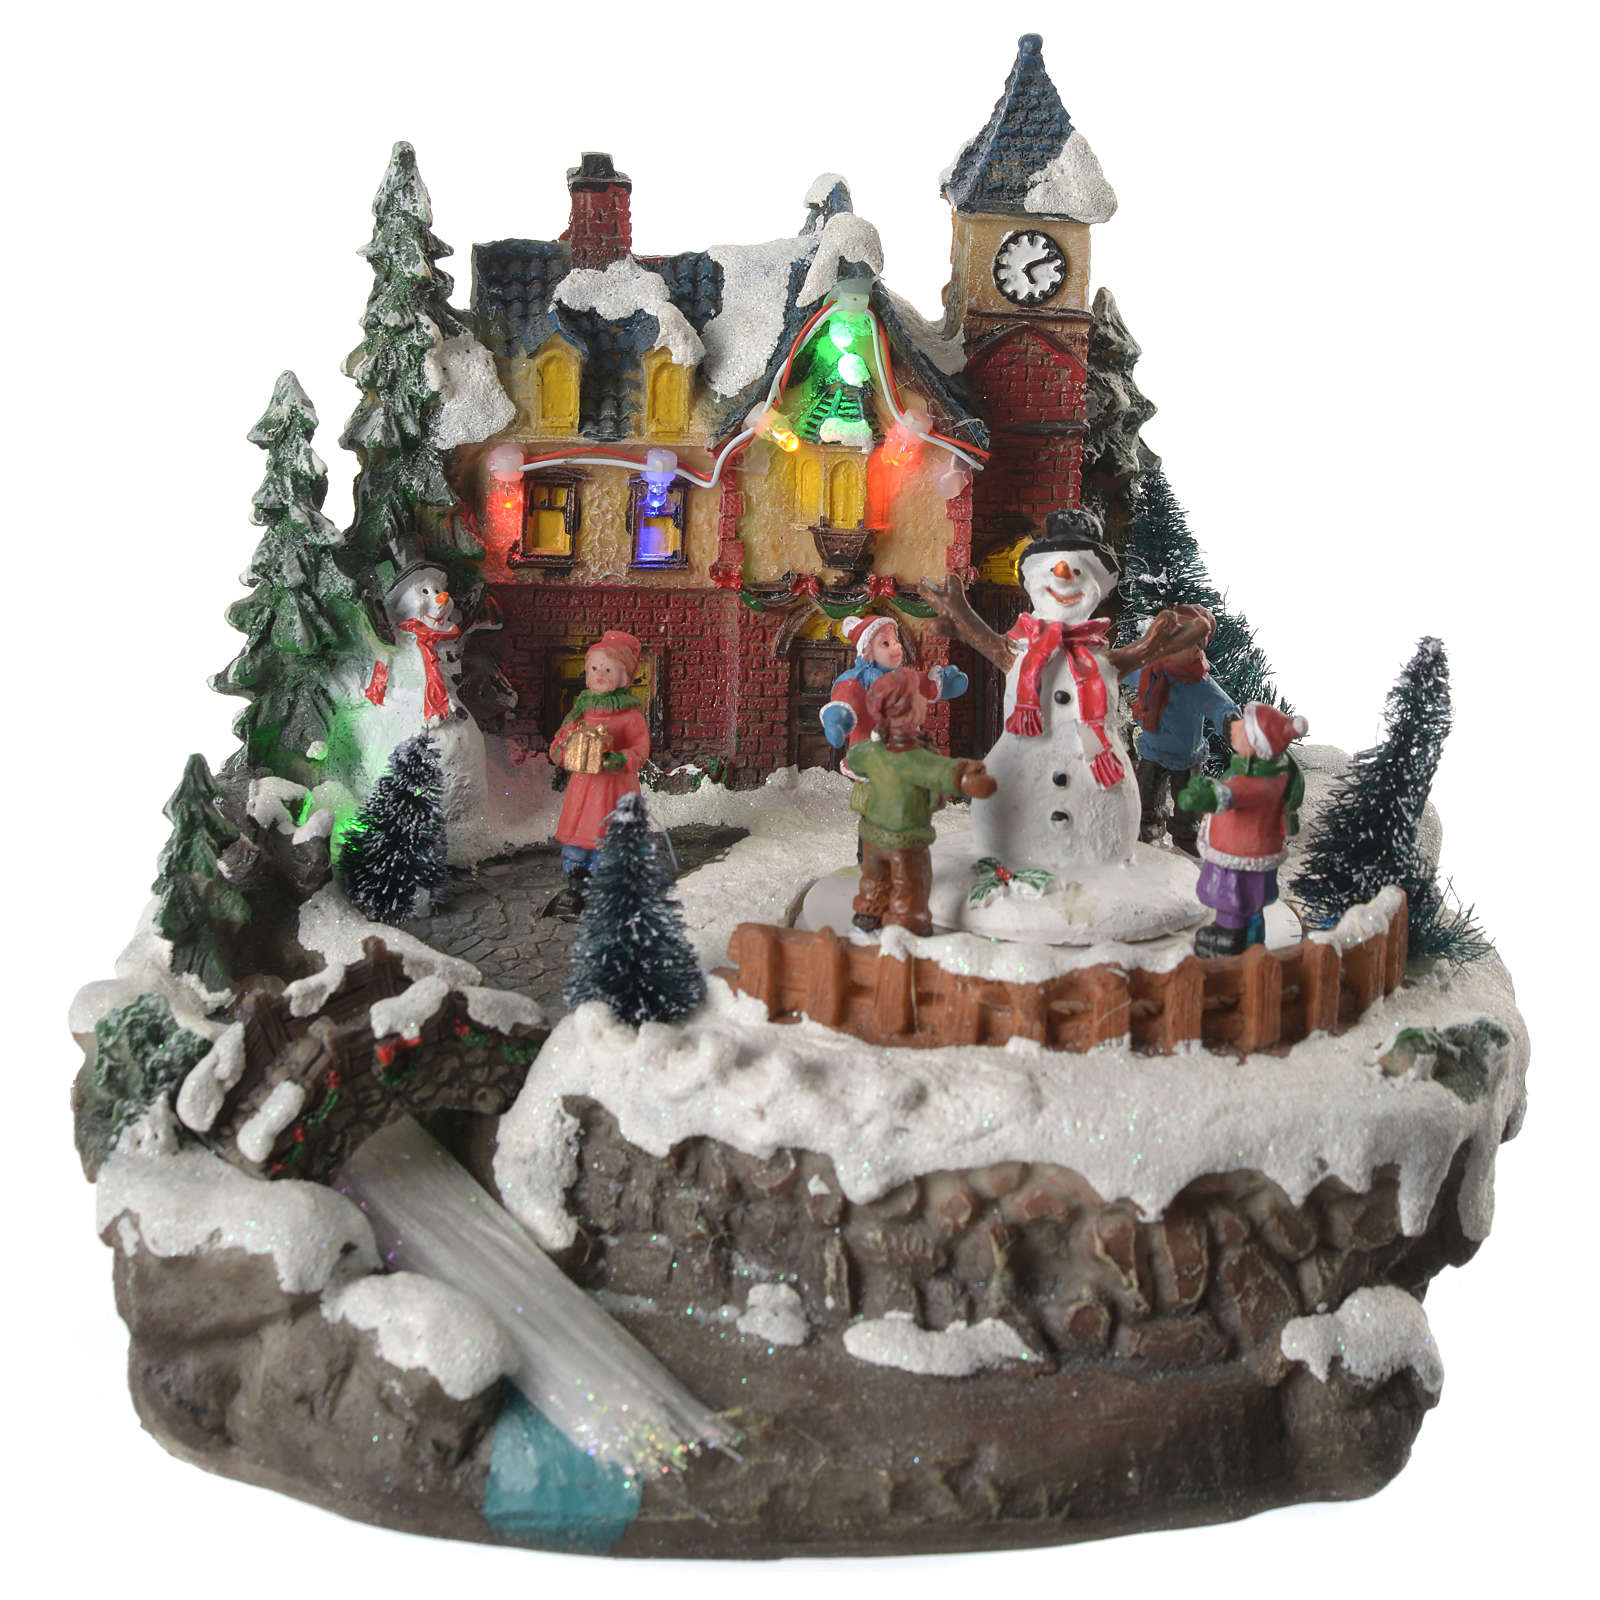 Illuminated Christmas village with children and movement 20x20x20 3